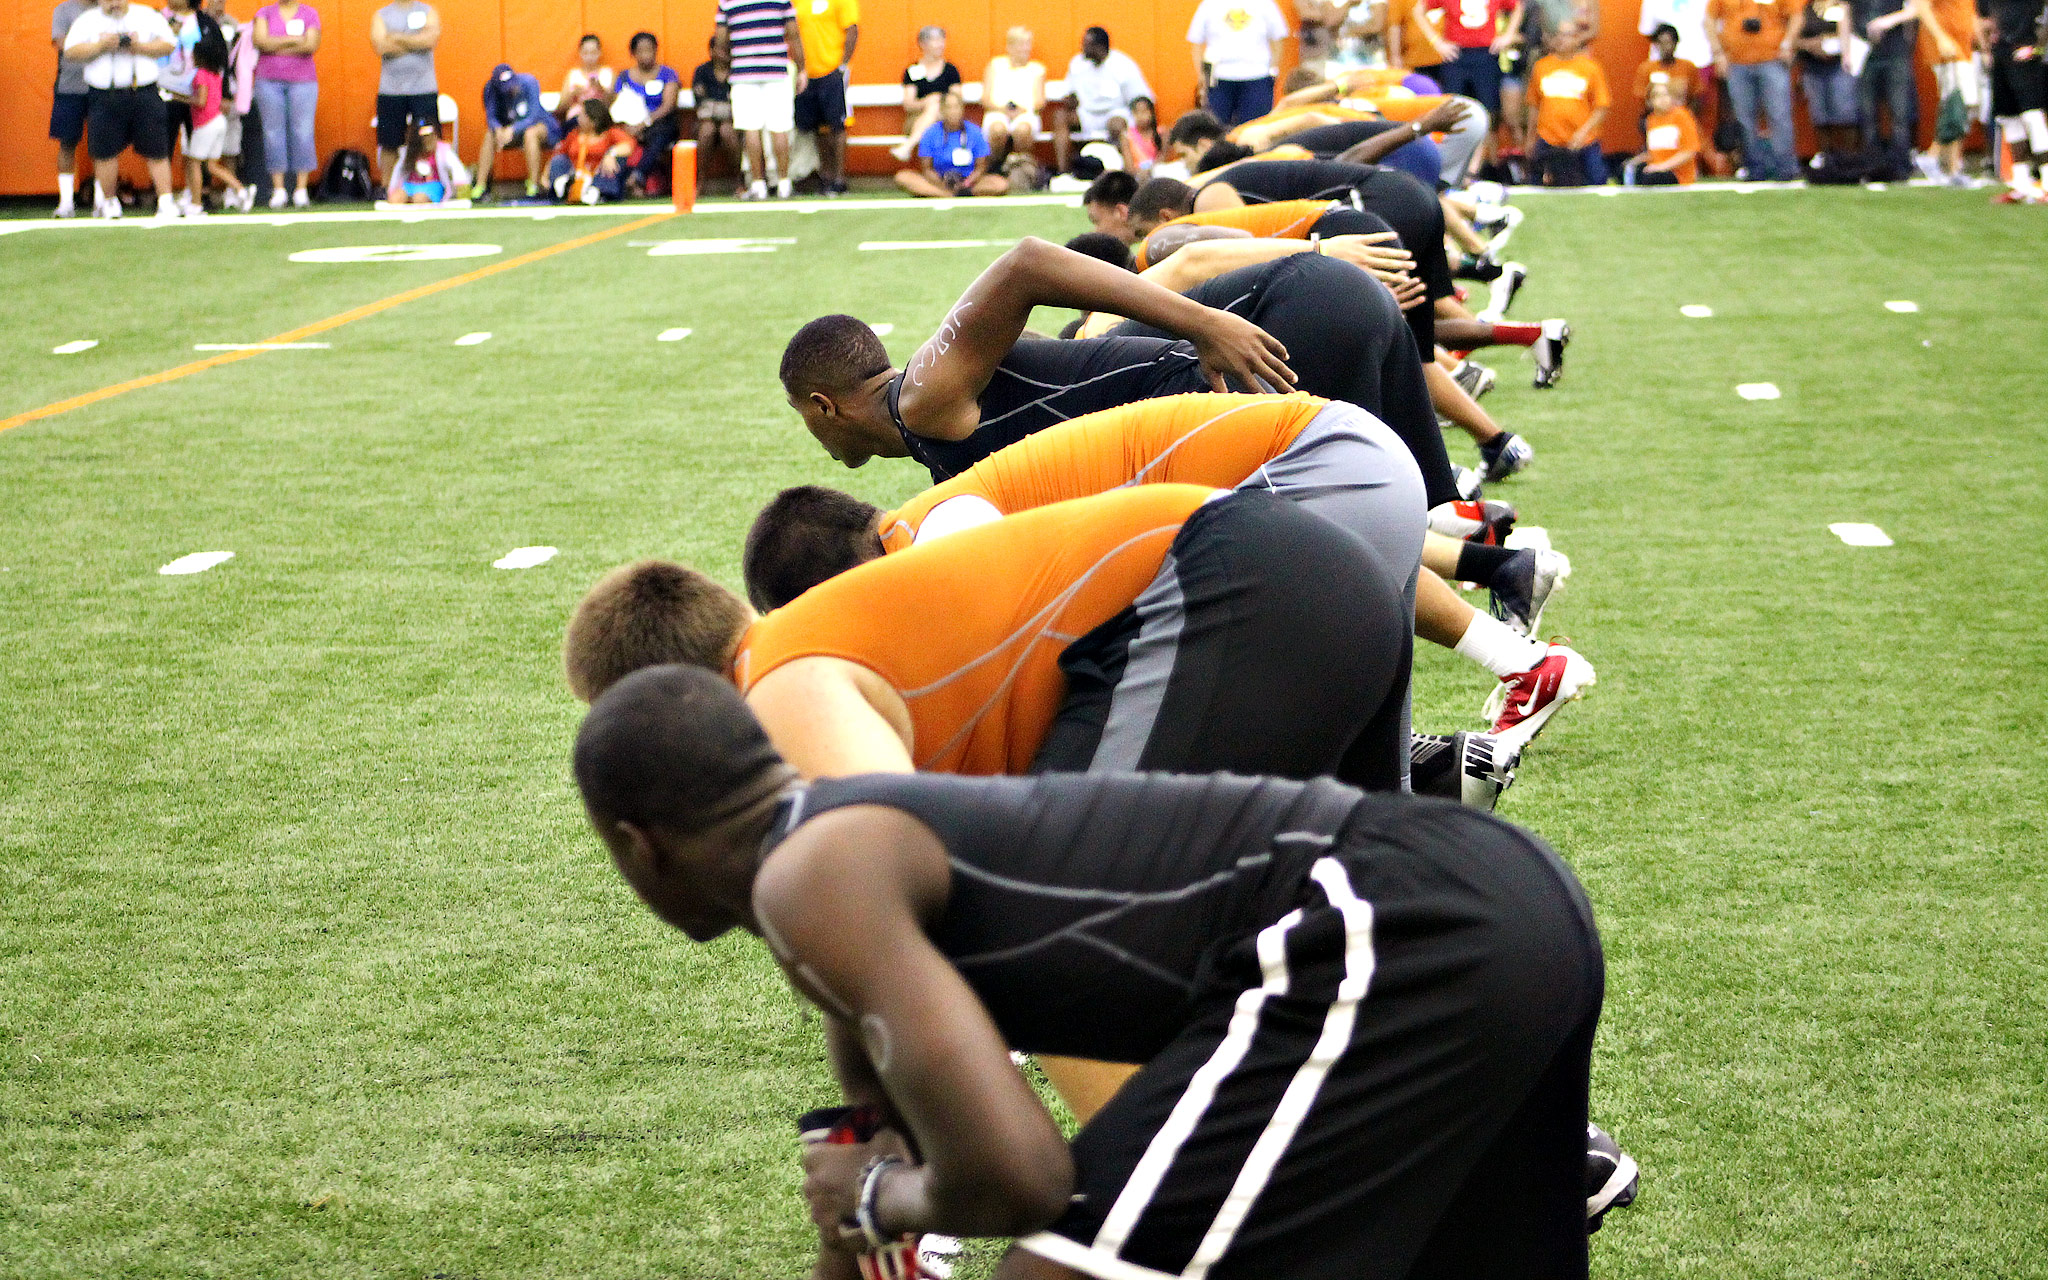 Texas camp warmup